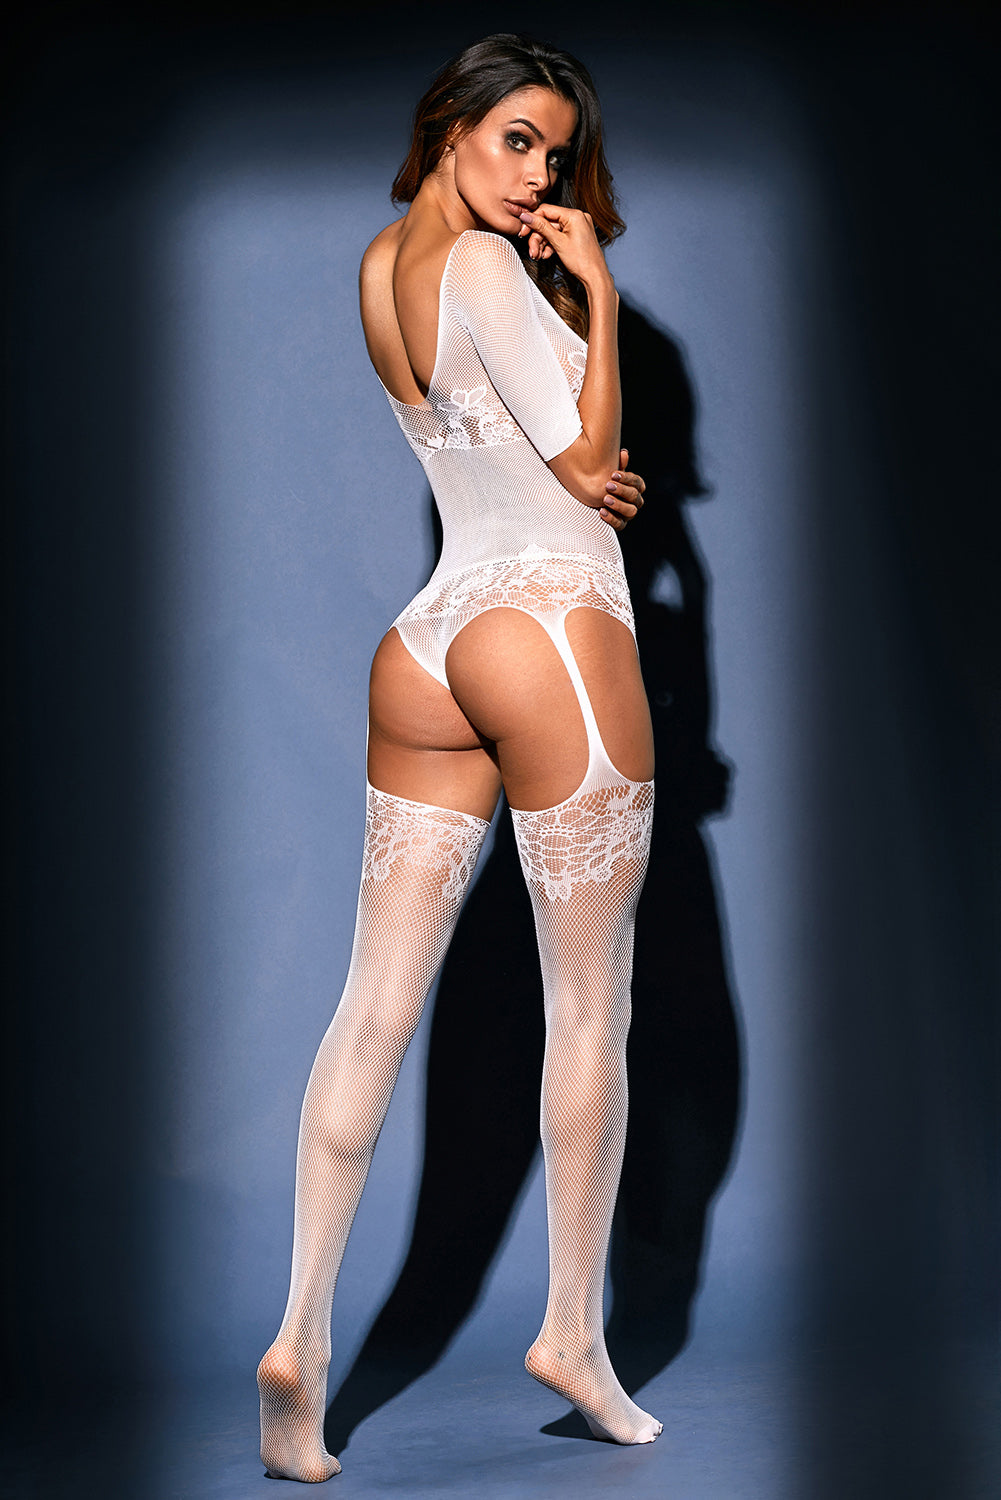 White Sheer Lace Mesh Teddy Garter Body Stocking